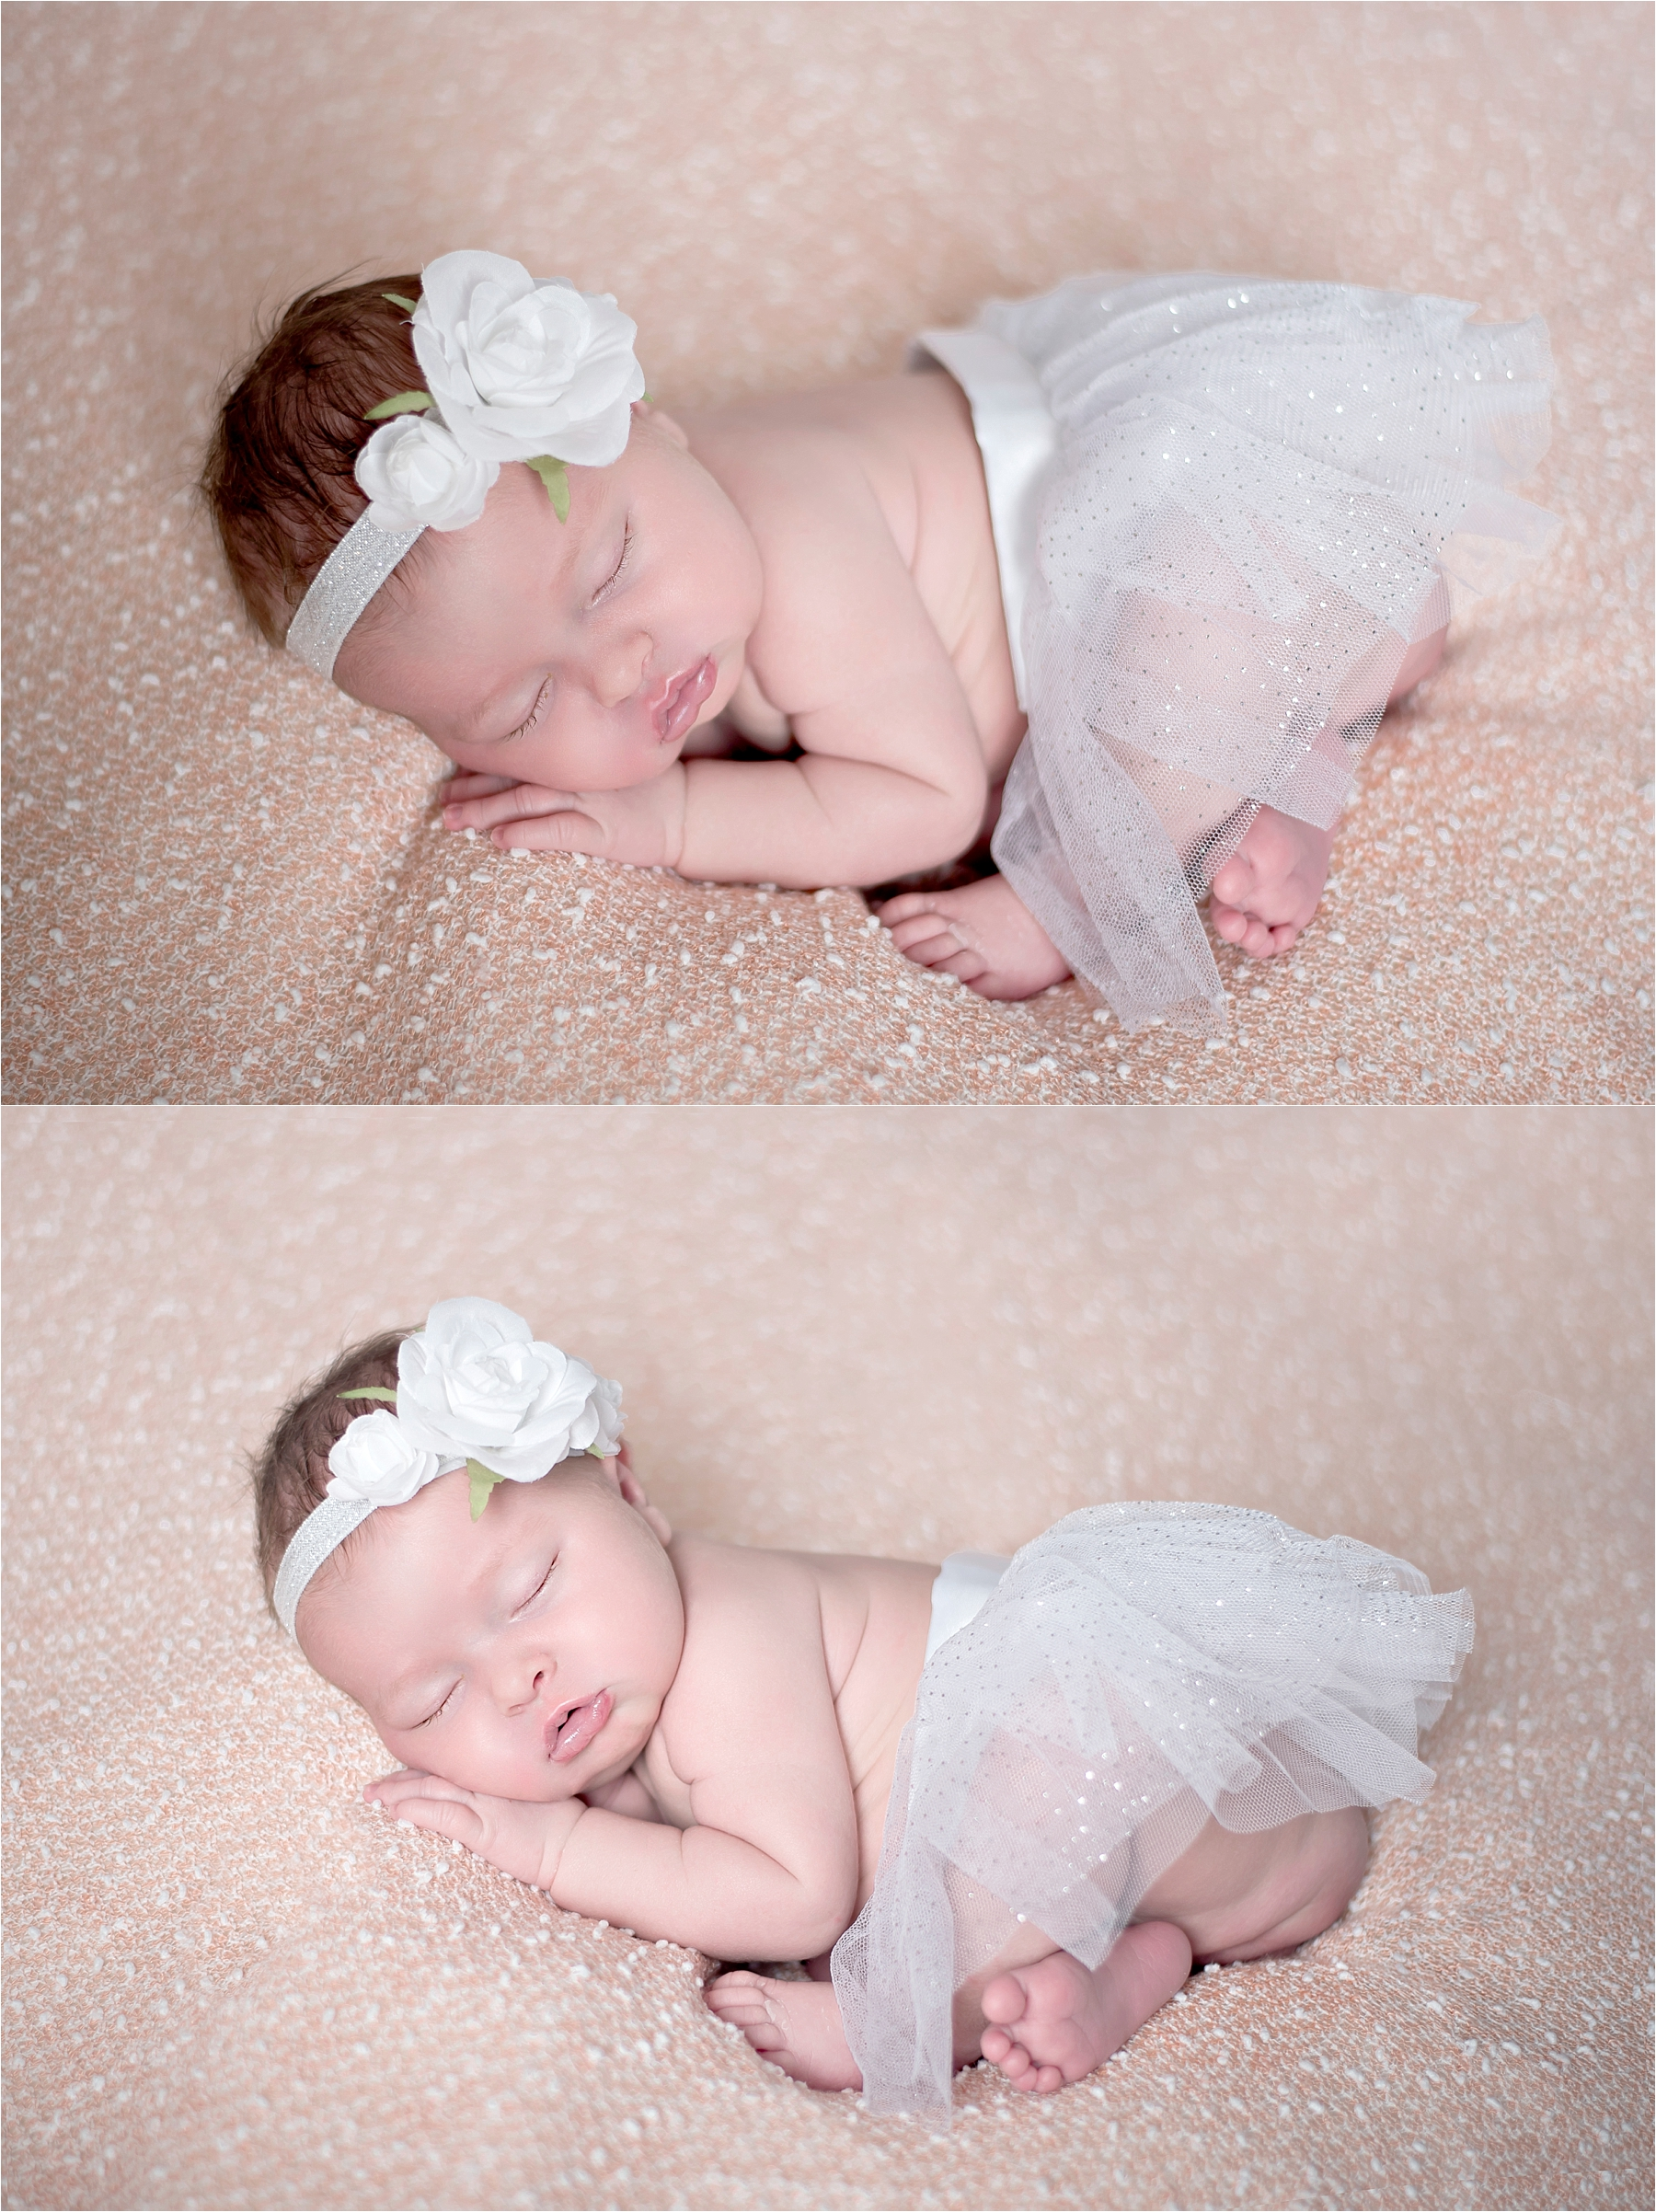 Anthea Michel Photography,At home,Isla,Lifestyle,baby girl,girl,newborn,pink,